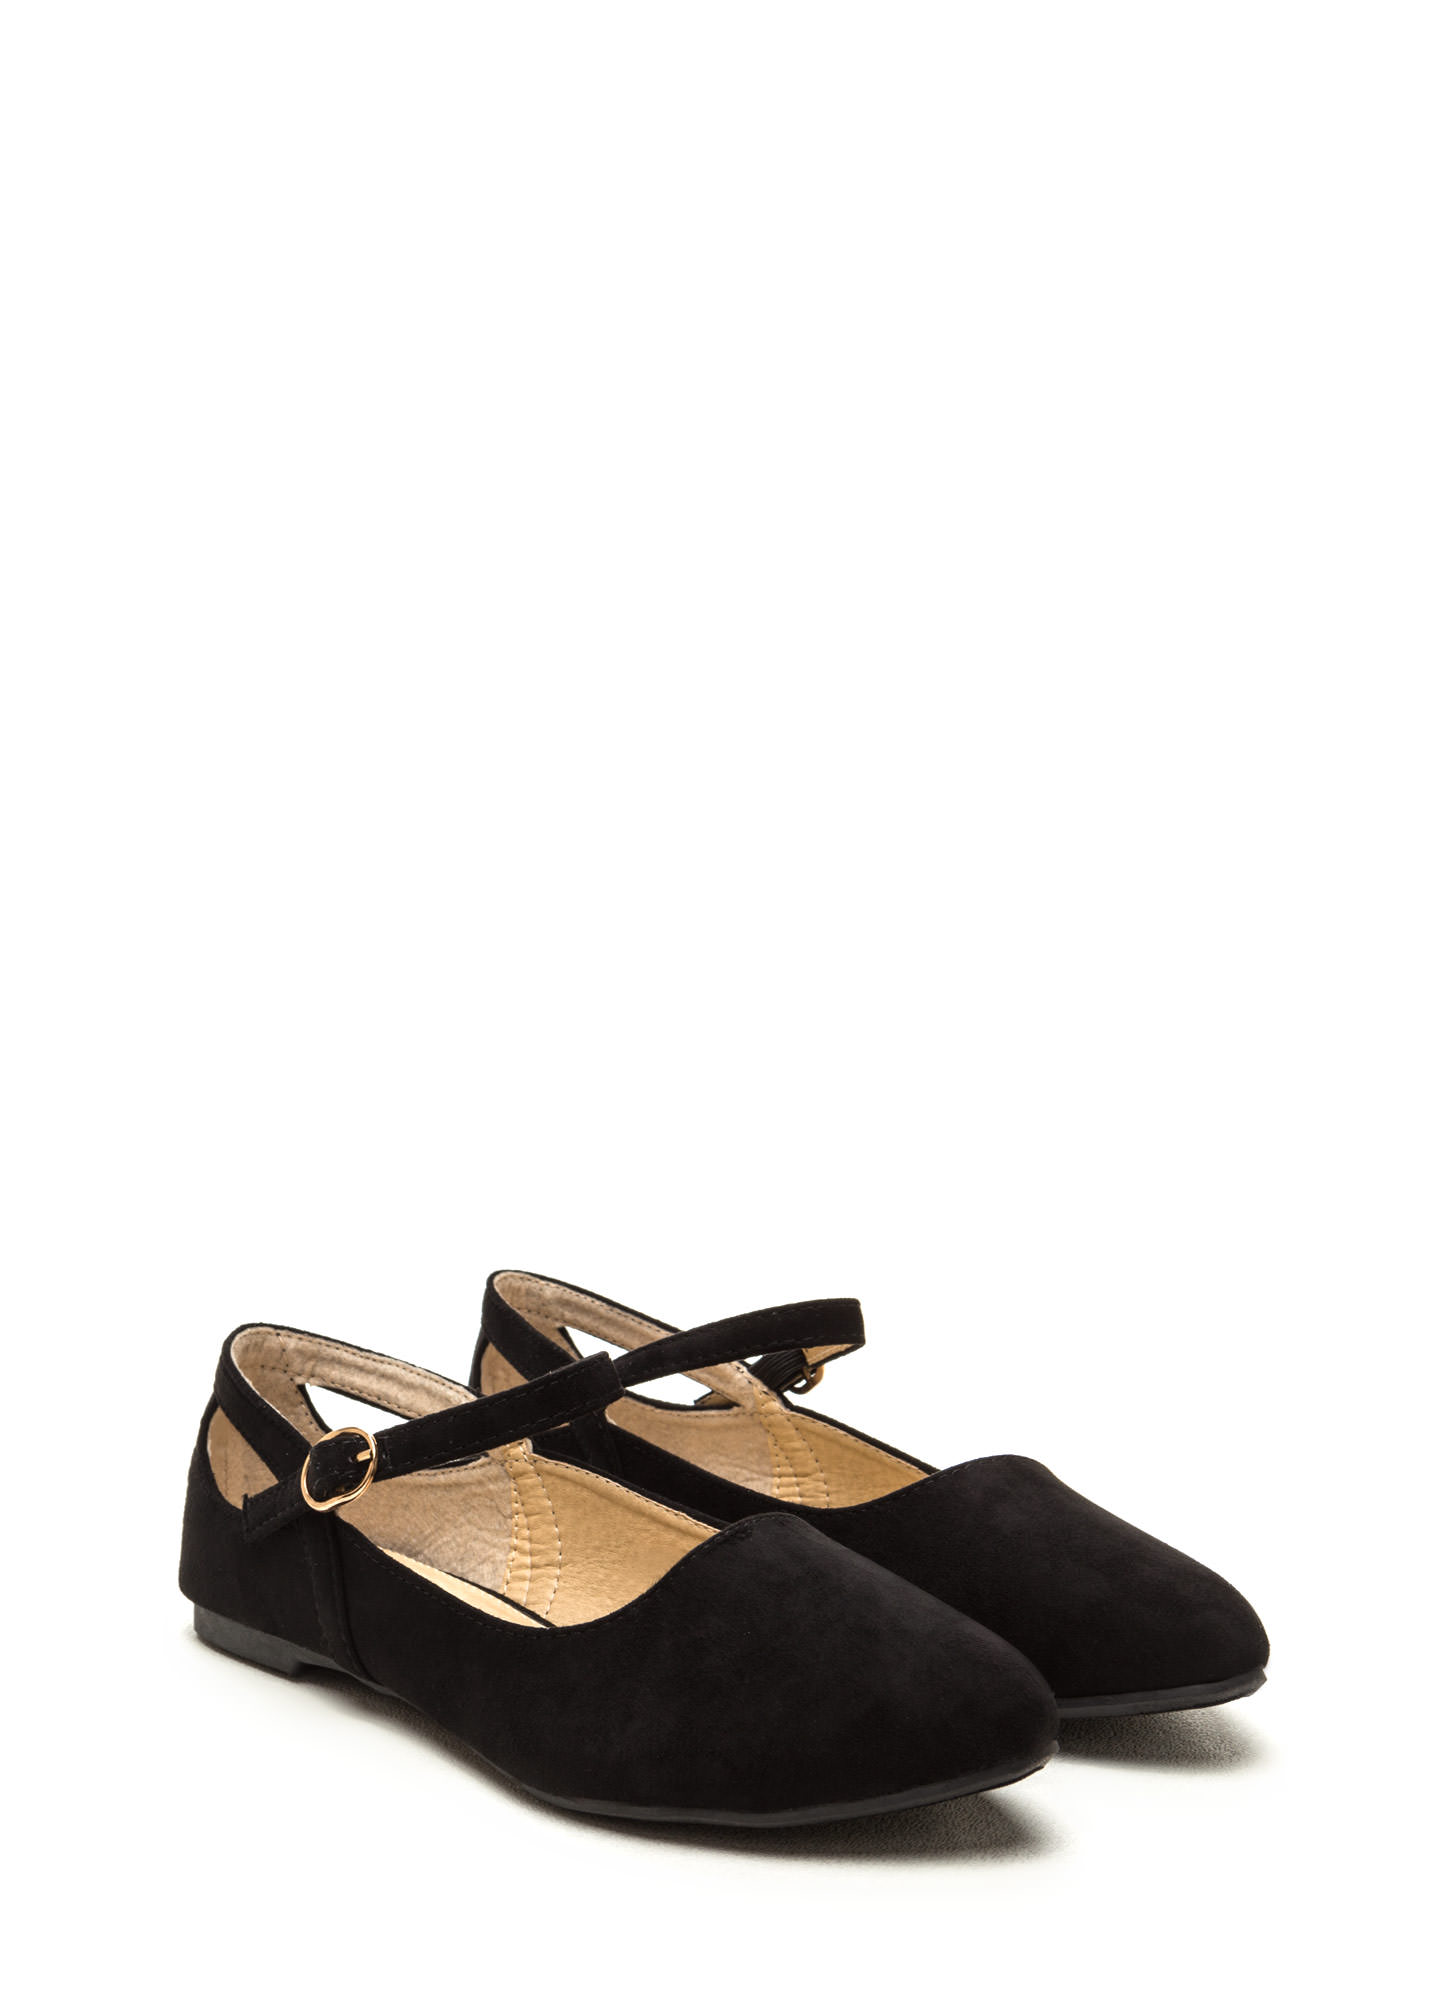 Chic Footnote Pointy Cut-Out Flats BLACK